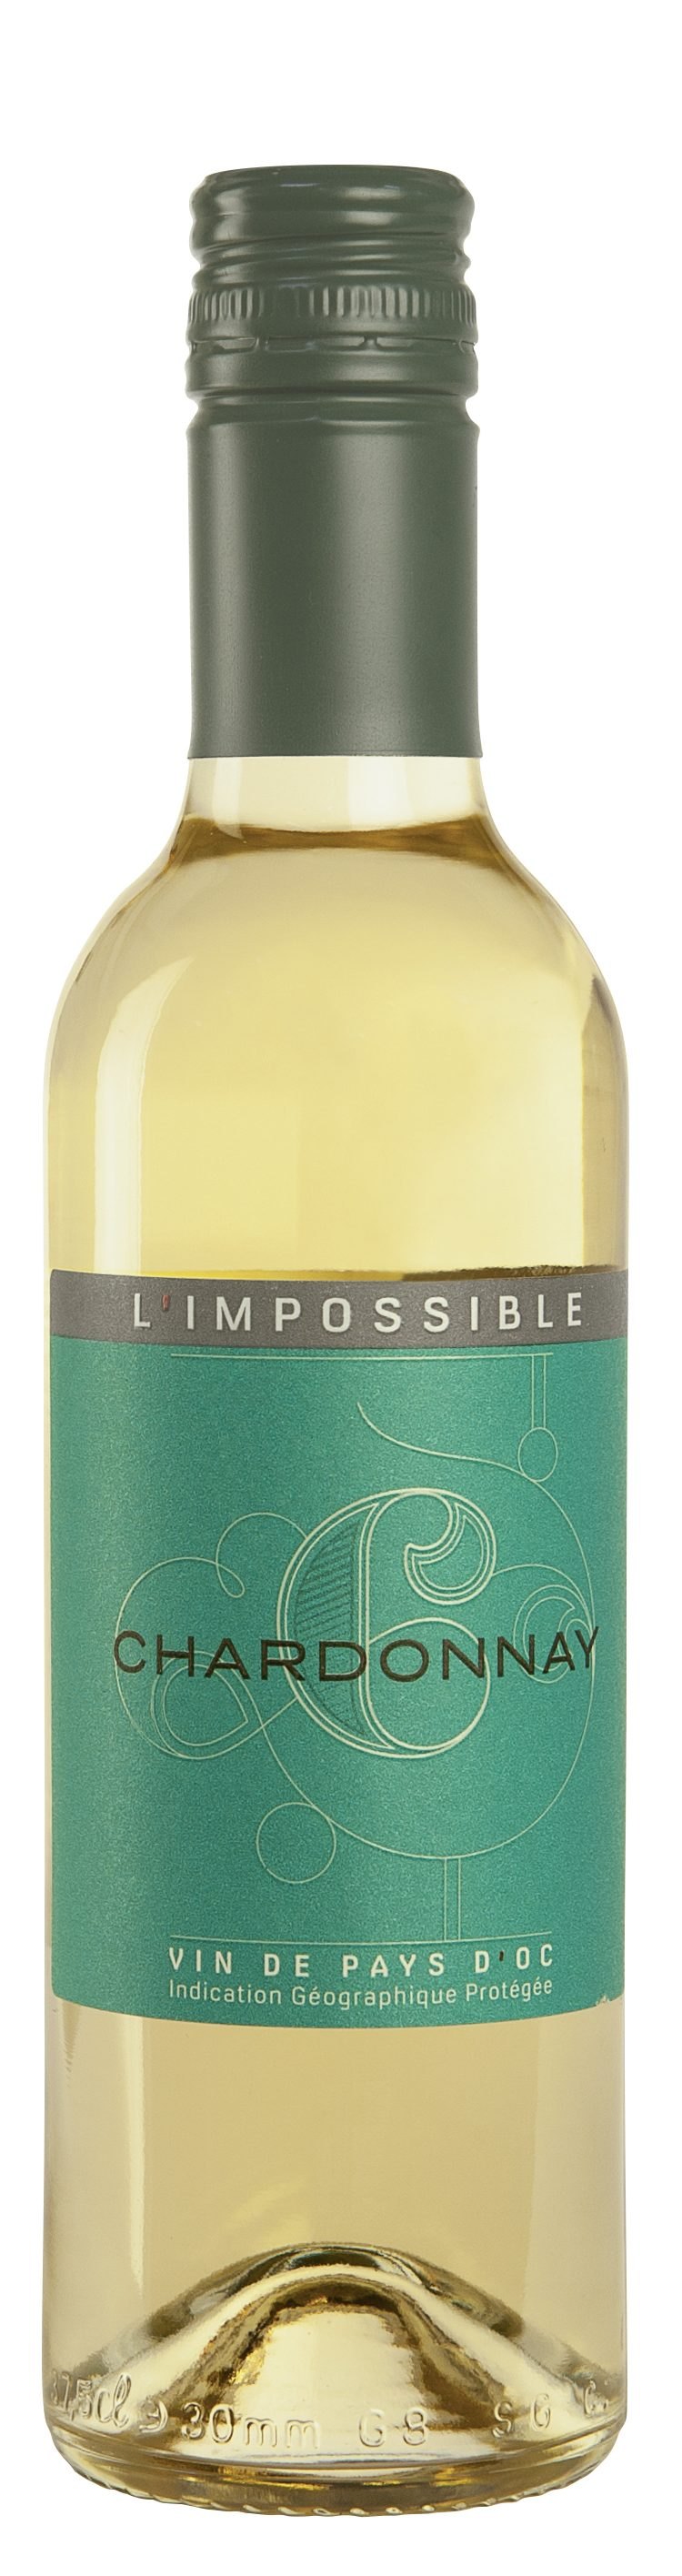 L'Impossible Chardonnay 0.375